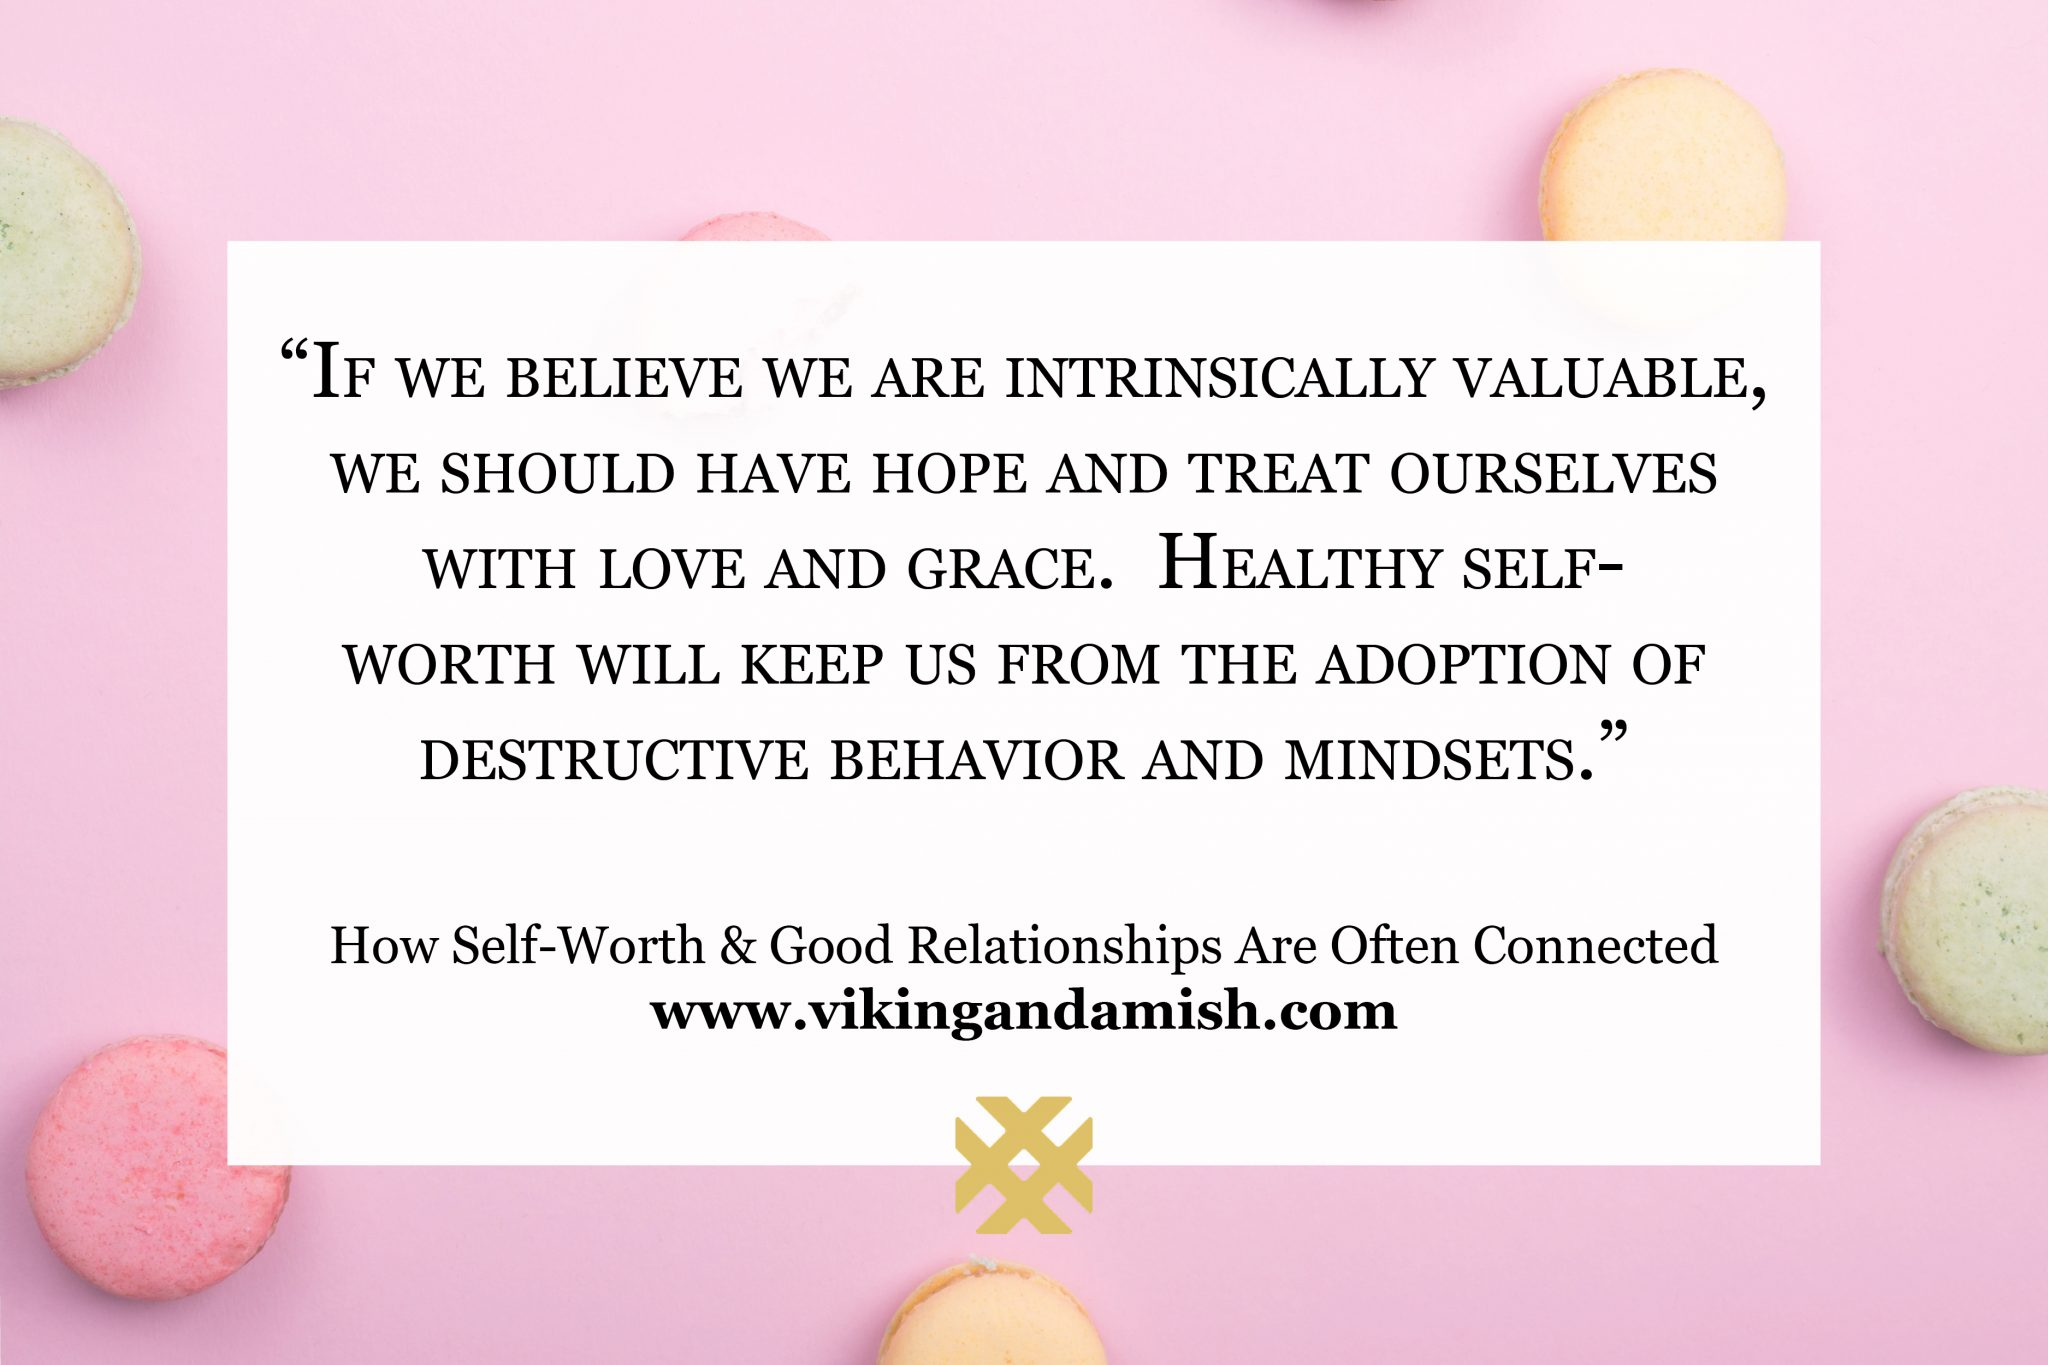 Self-worth and good relationships are often related. They both play a huge part in how we feel about ourselves, but also how we relate to others.